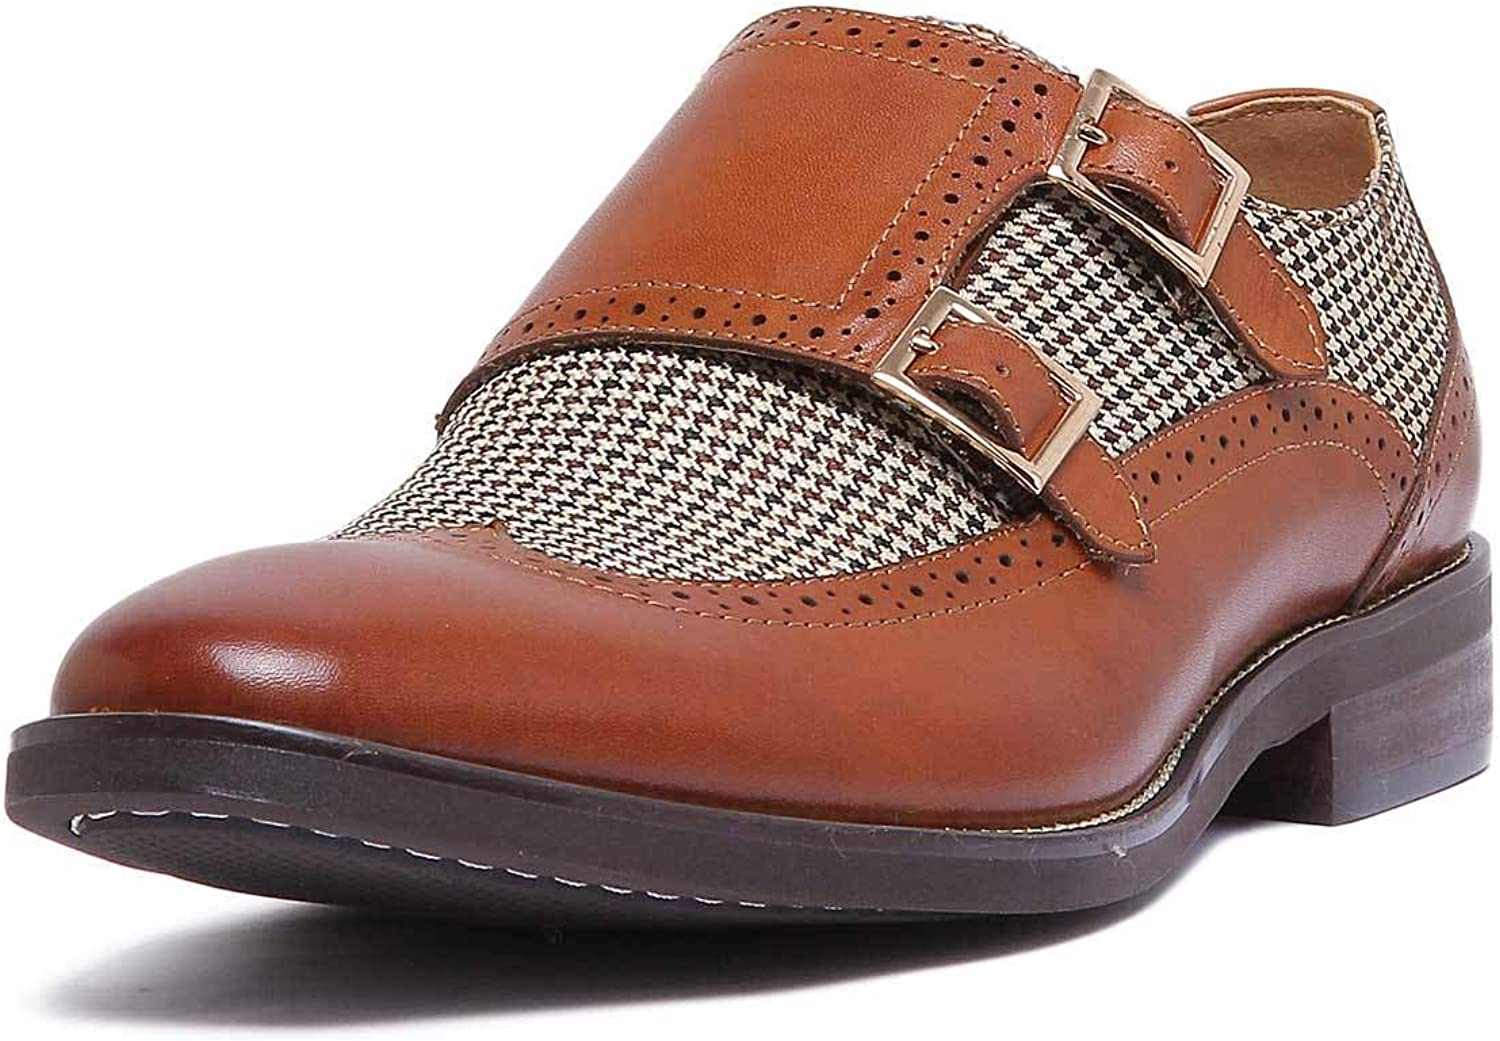 Justin Reece Buckle up Leather Monk shoes with Tweed Detailing Effect and Leather Footbed